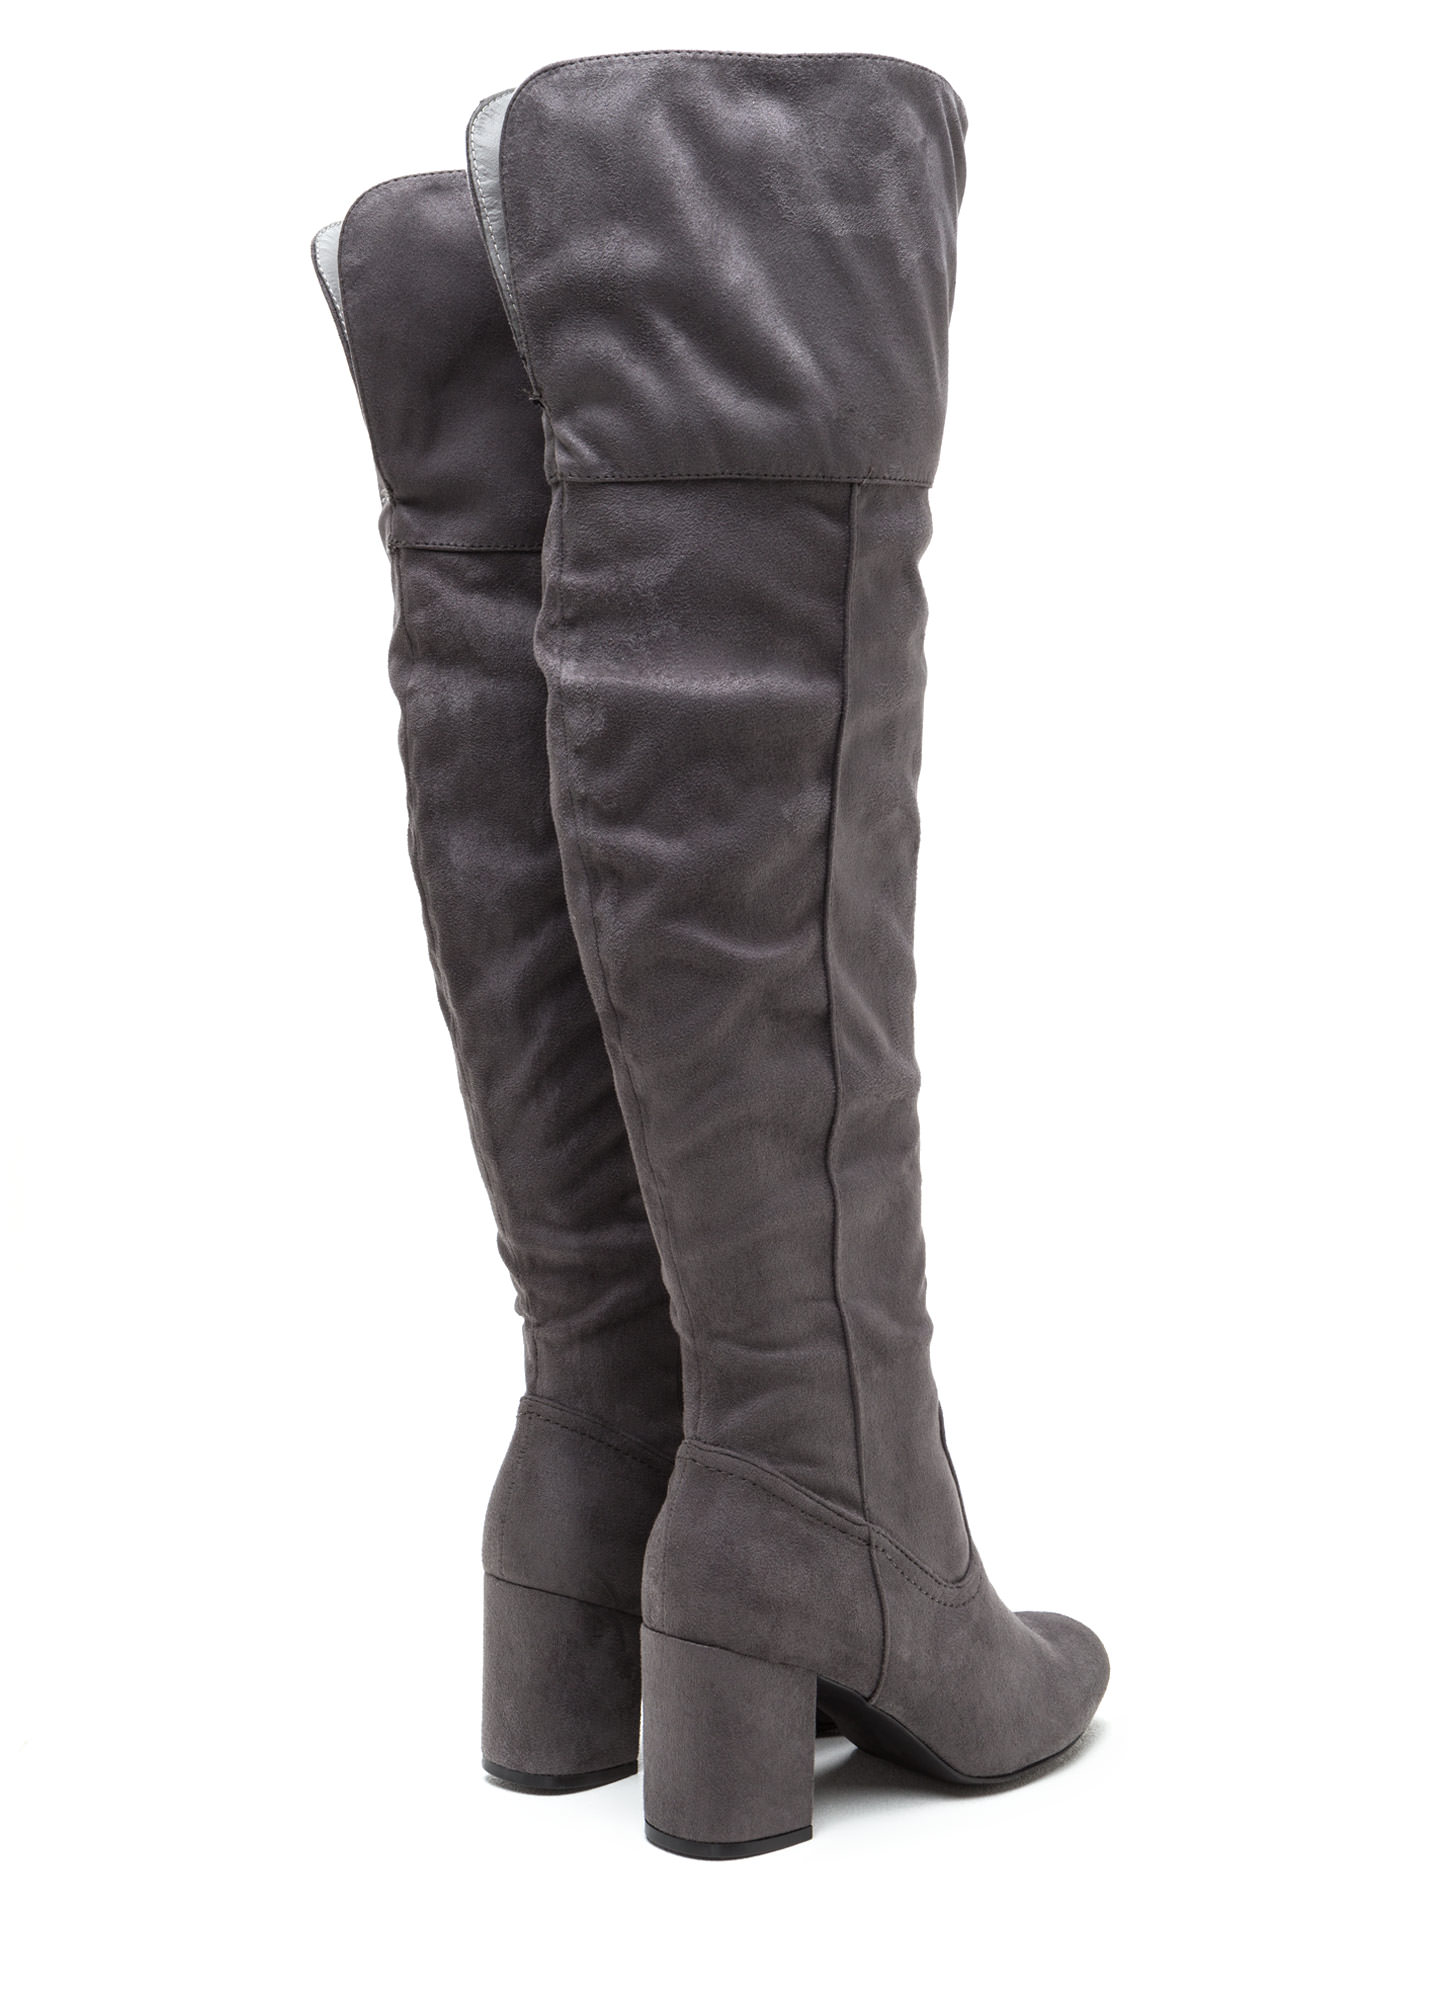 Edge Of Glory Over-The-Knee Boots DKGREY